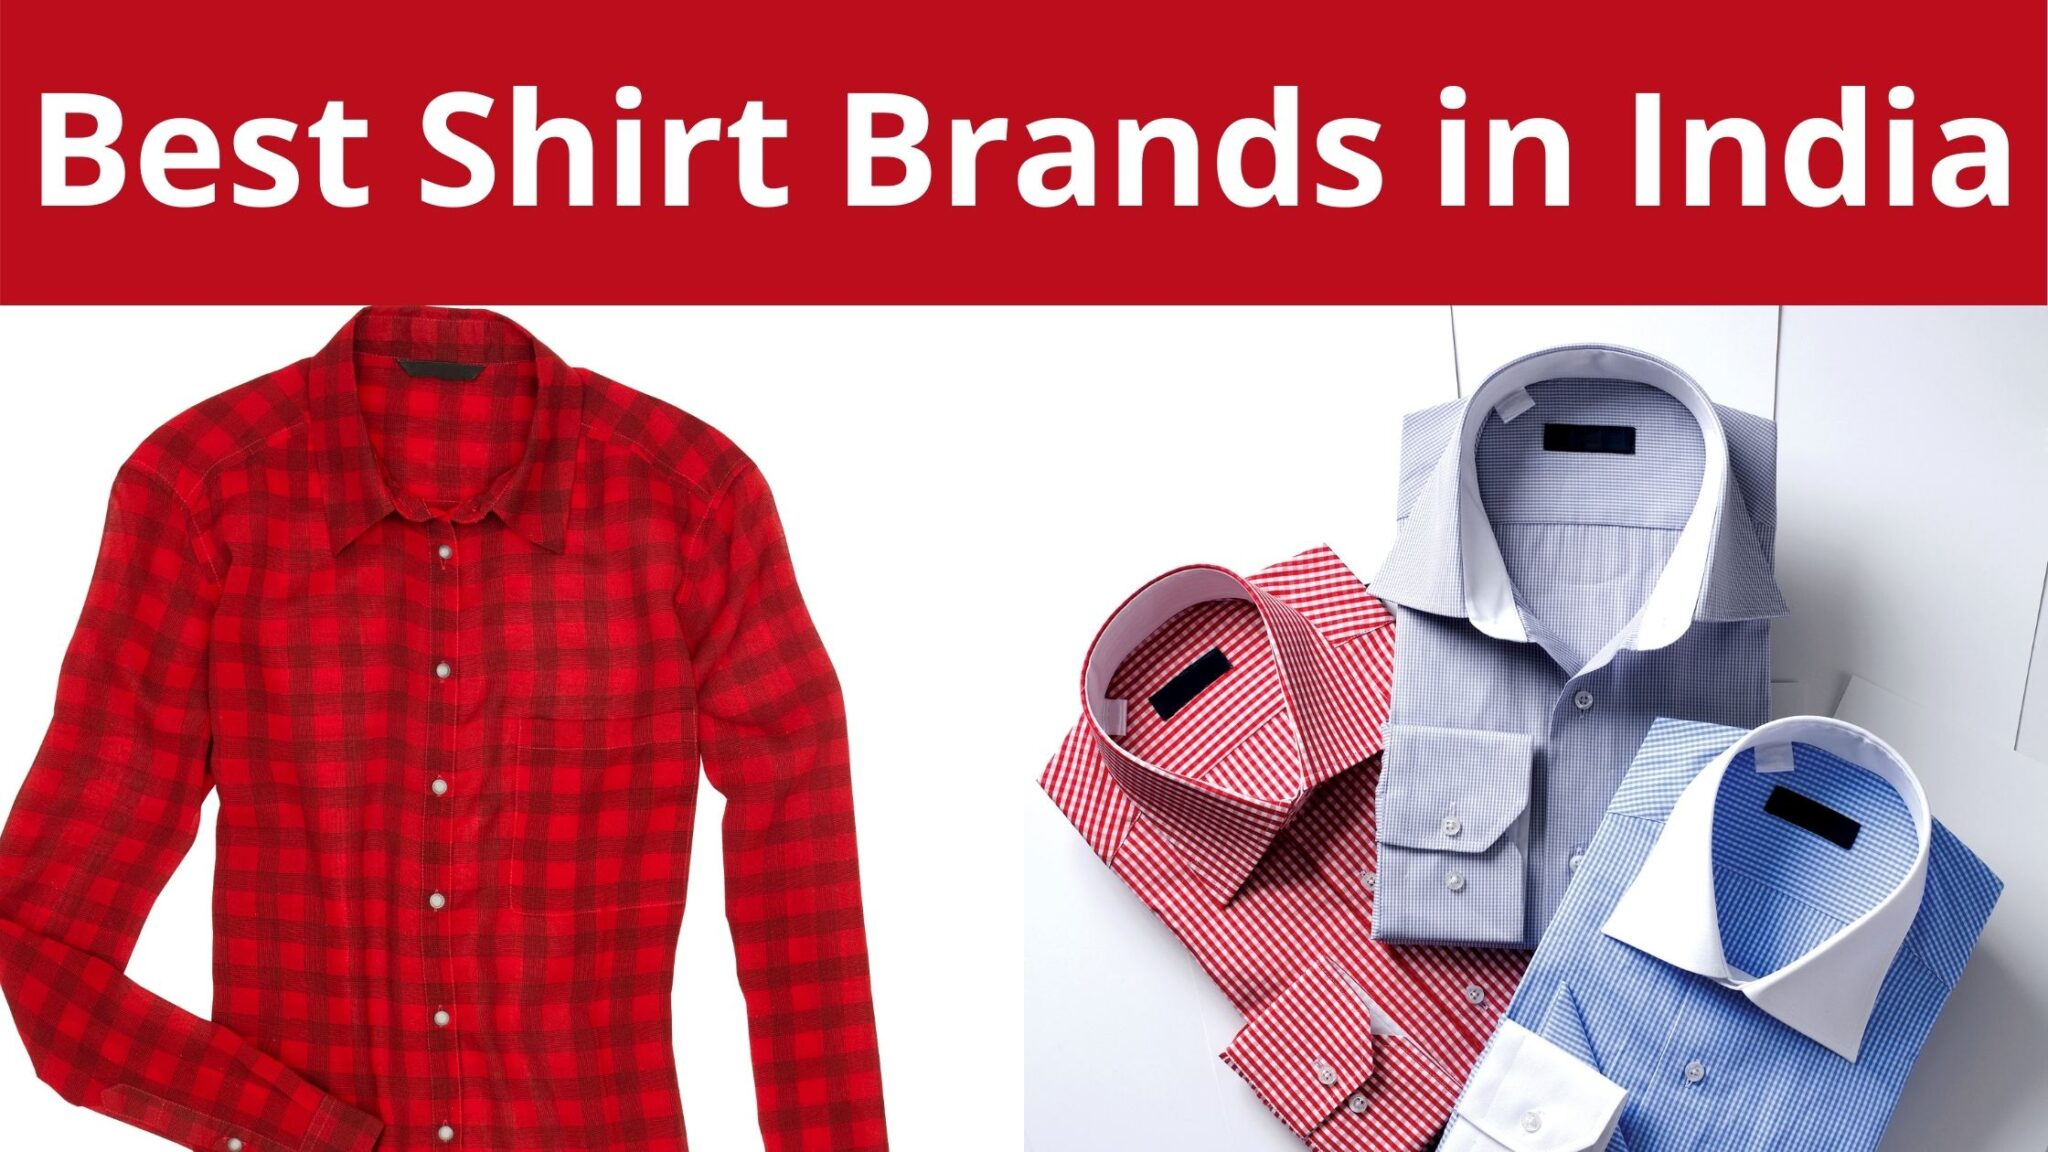 Best Shirt Brands in India